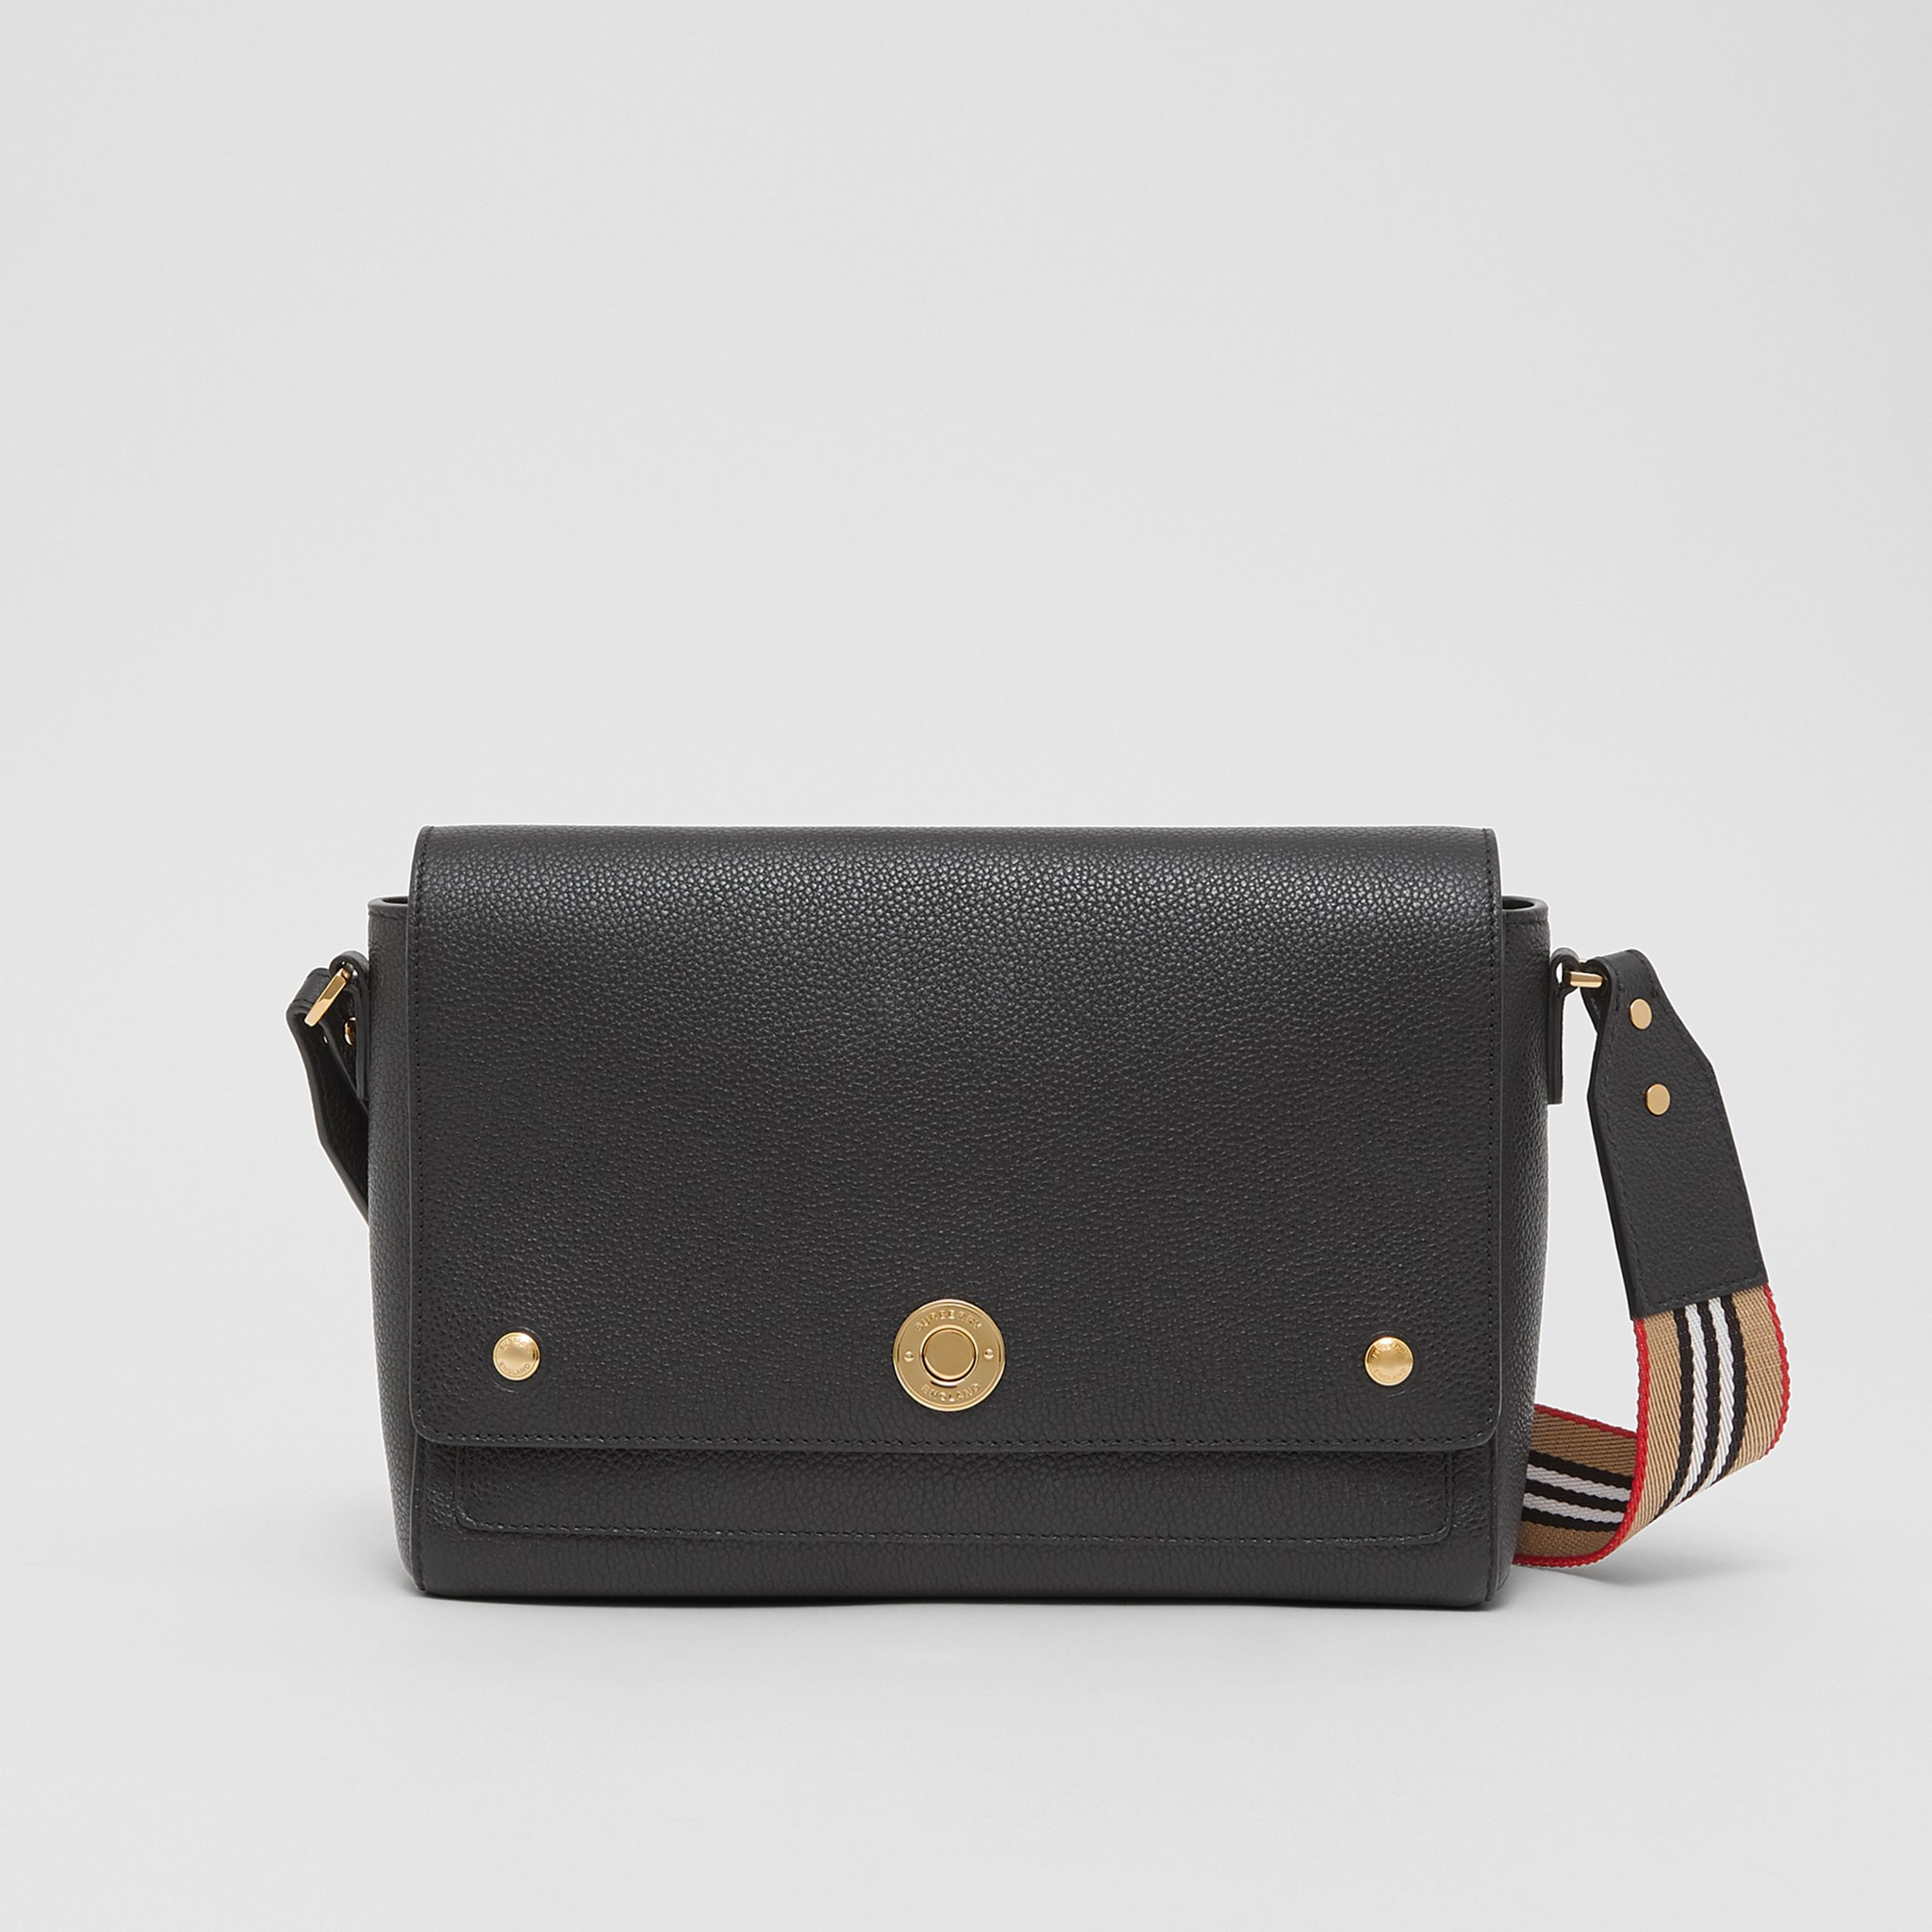 Grainy Leather Note Crossbody Bag in Black - Women | Burberry United Kingdom - 1